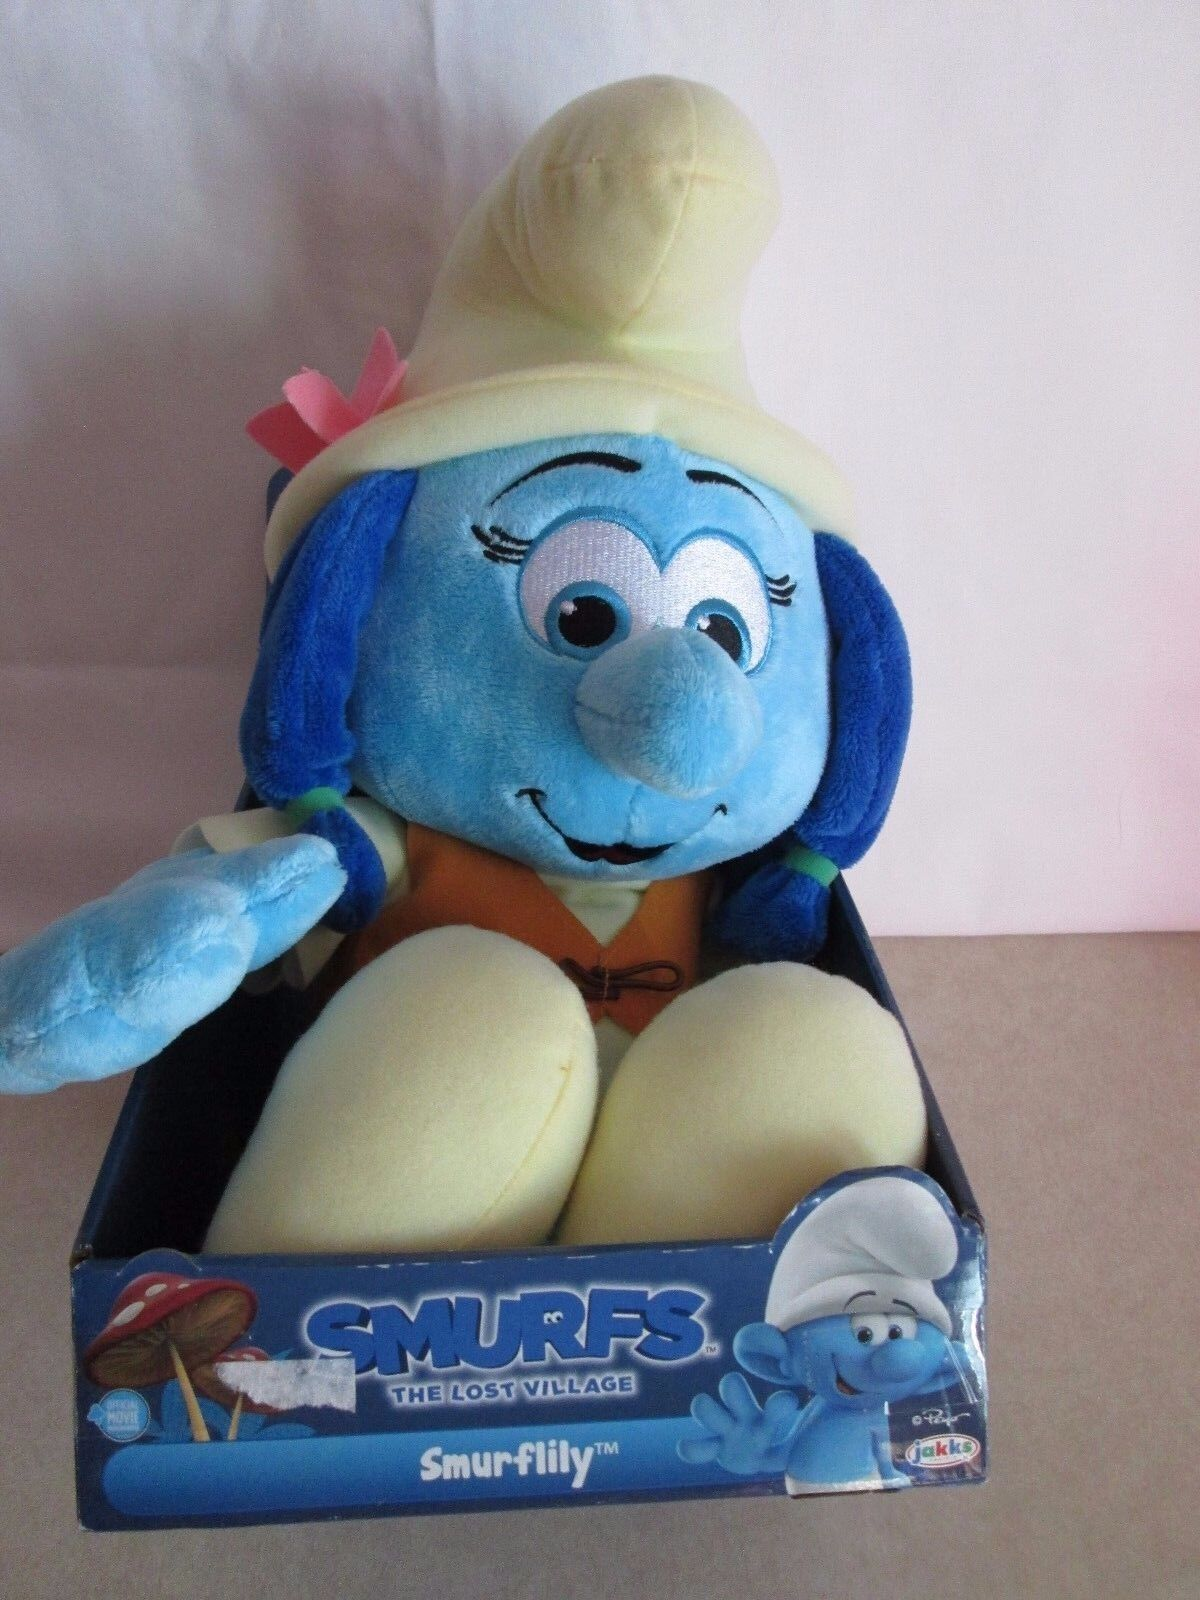 Smurflily Stuffed Smurf- The Lost Village